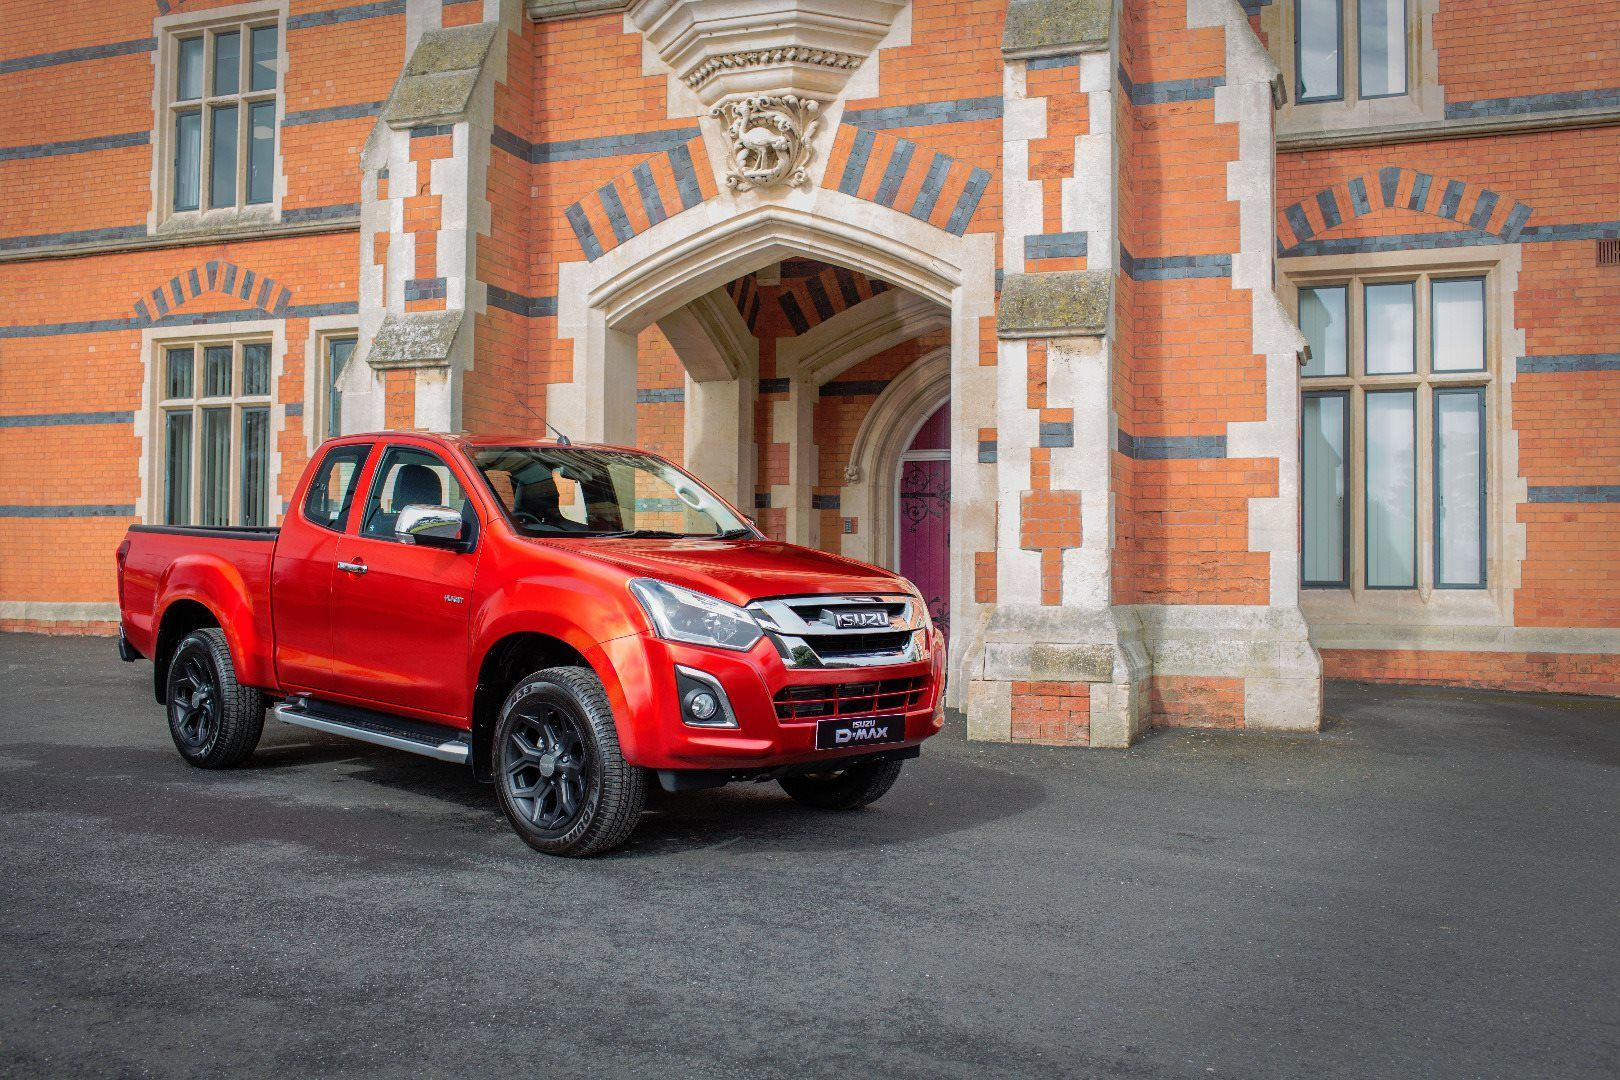 ISUZU PREMIER YUKON LUXE EXTENDED CAB AT CV SHOW 2018